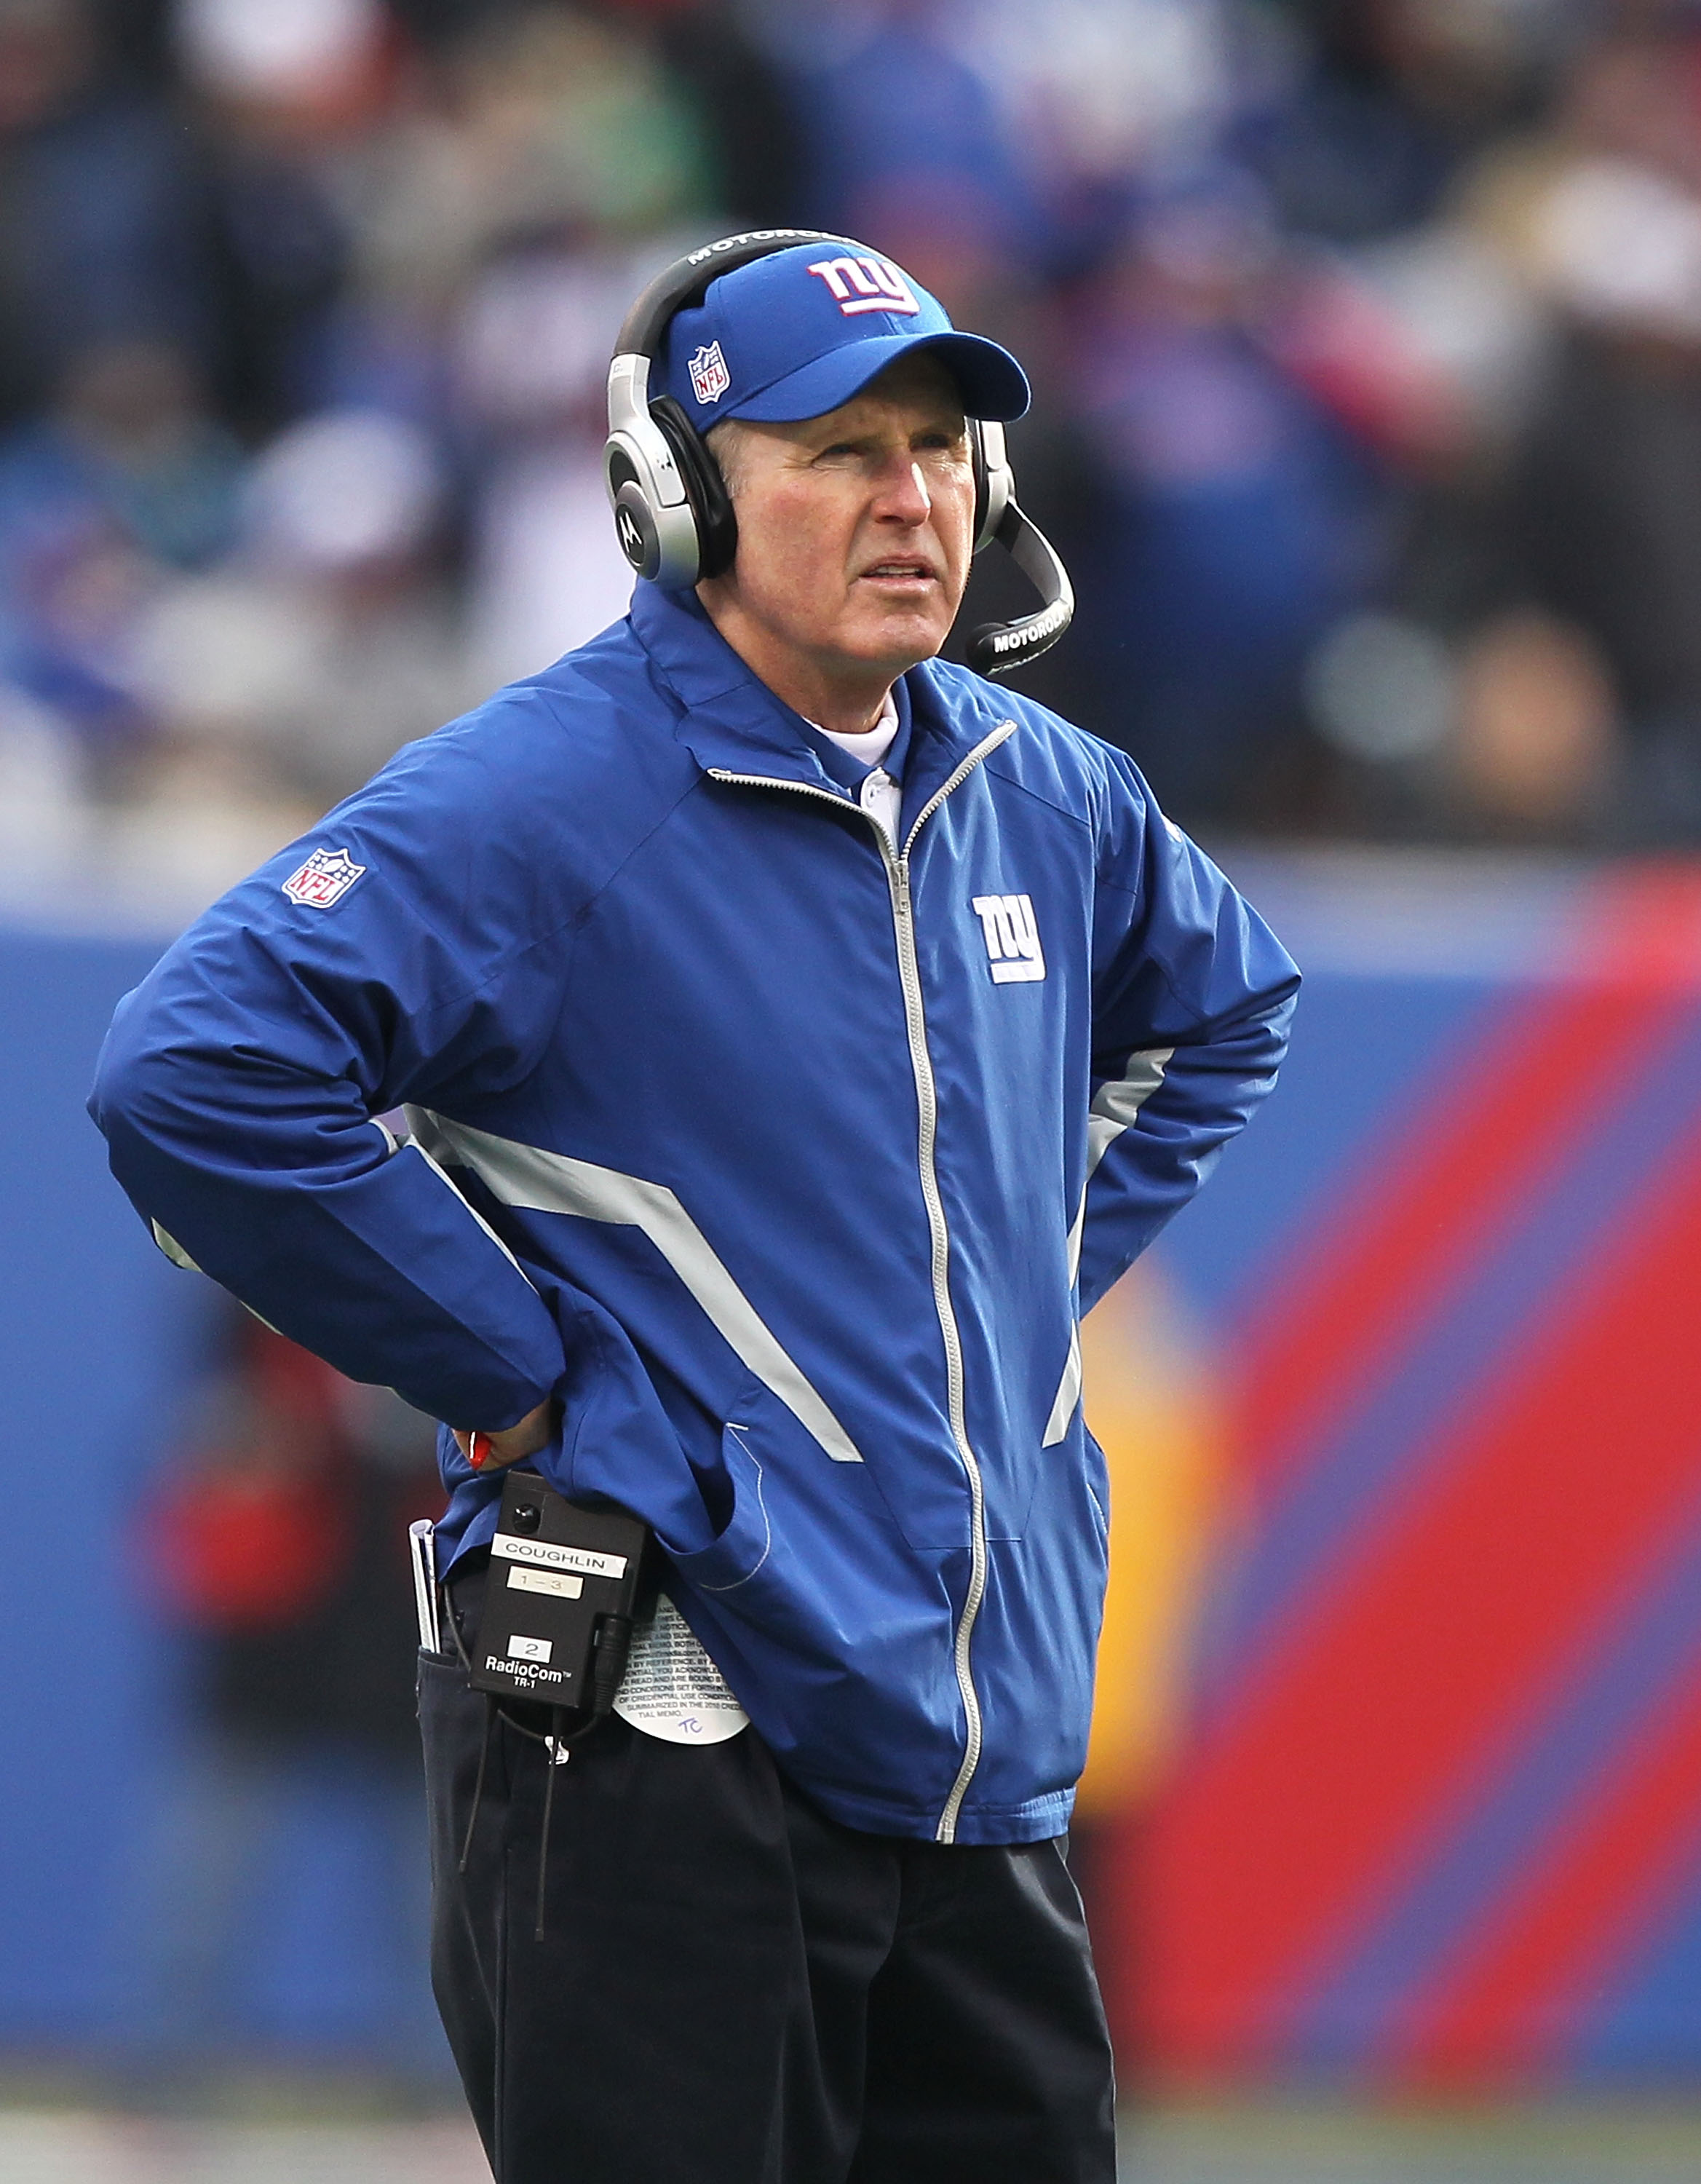 EAST RUTHERFORD, NJ - DECEMBER 19:  Tom Coughlin, Head Coach of the New York Giants looks on against the Philadelphia Eagles during their game on December 19, 2010 at The New Meadowlands Stadium in East Rutherford, New Jersey.  (Photo by Al Bello/Getty Im